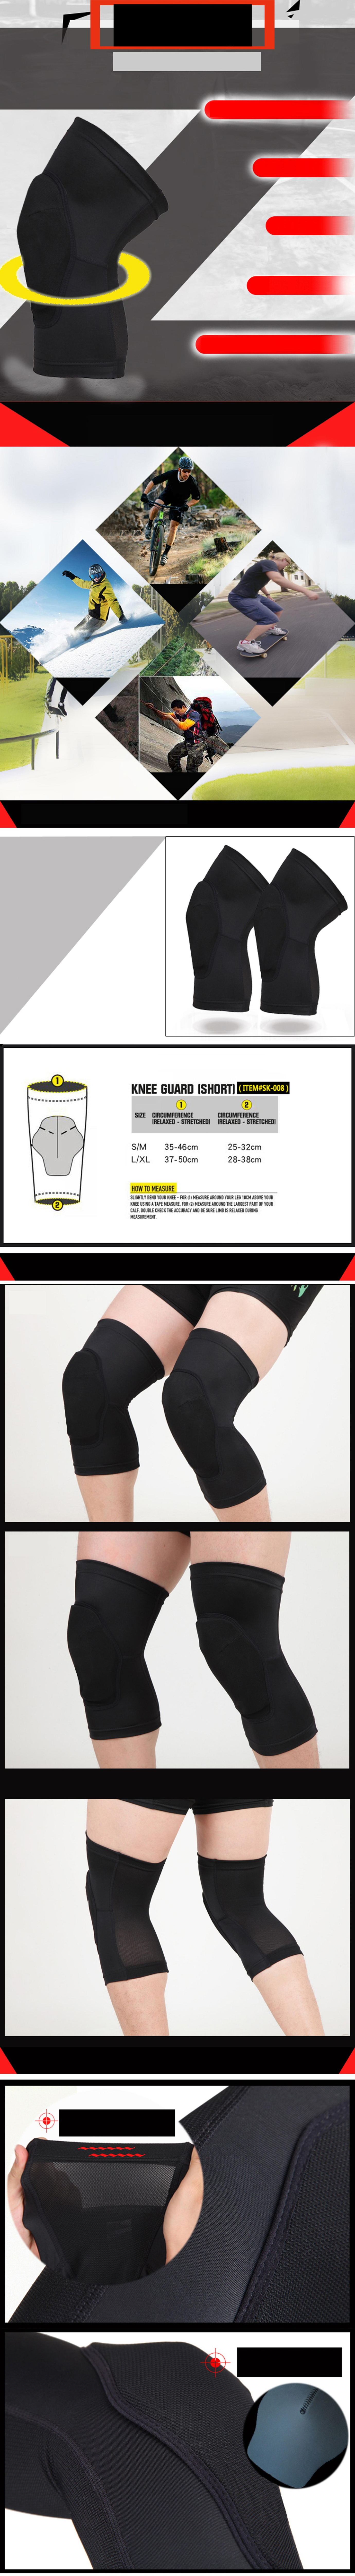 comfortable knee support